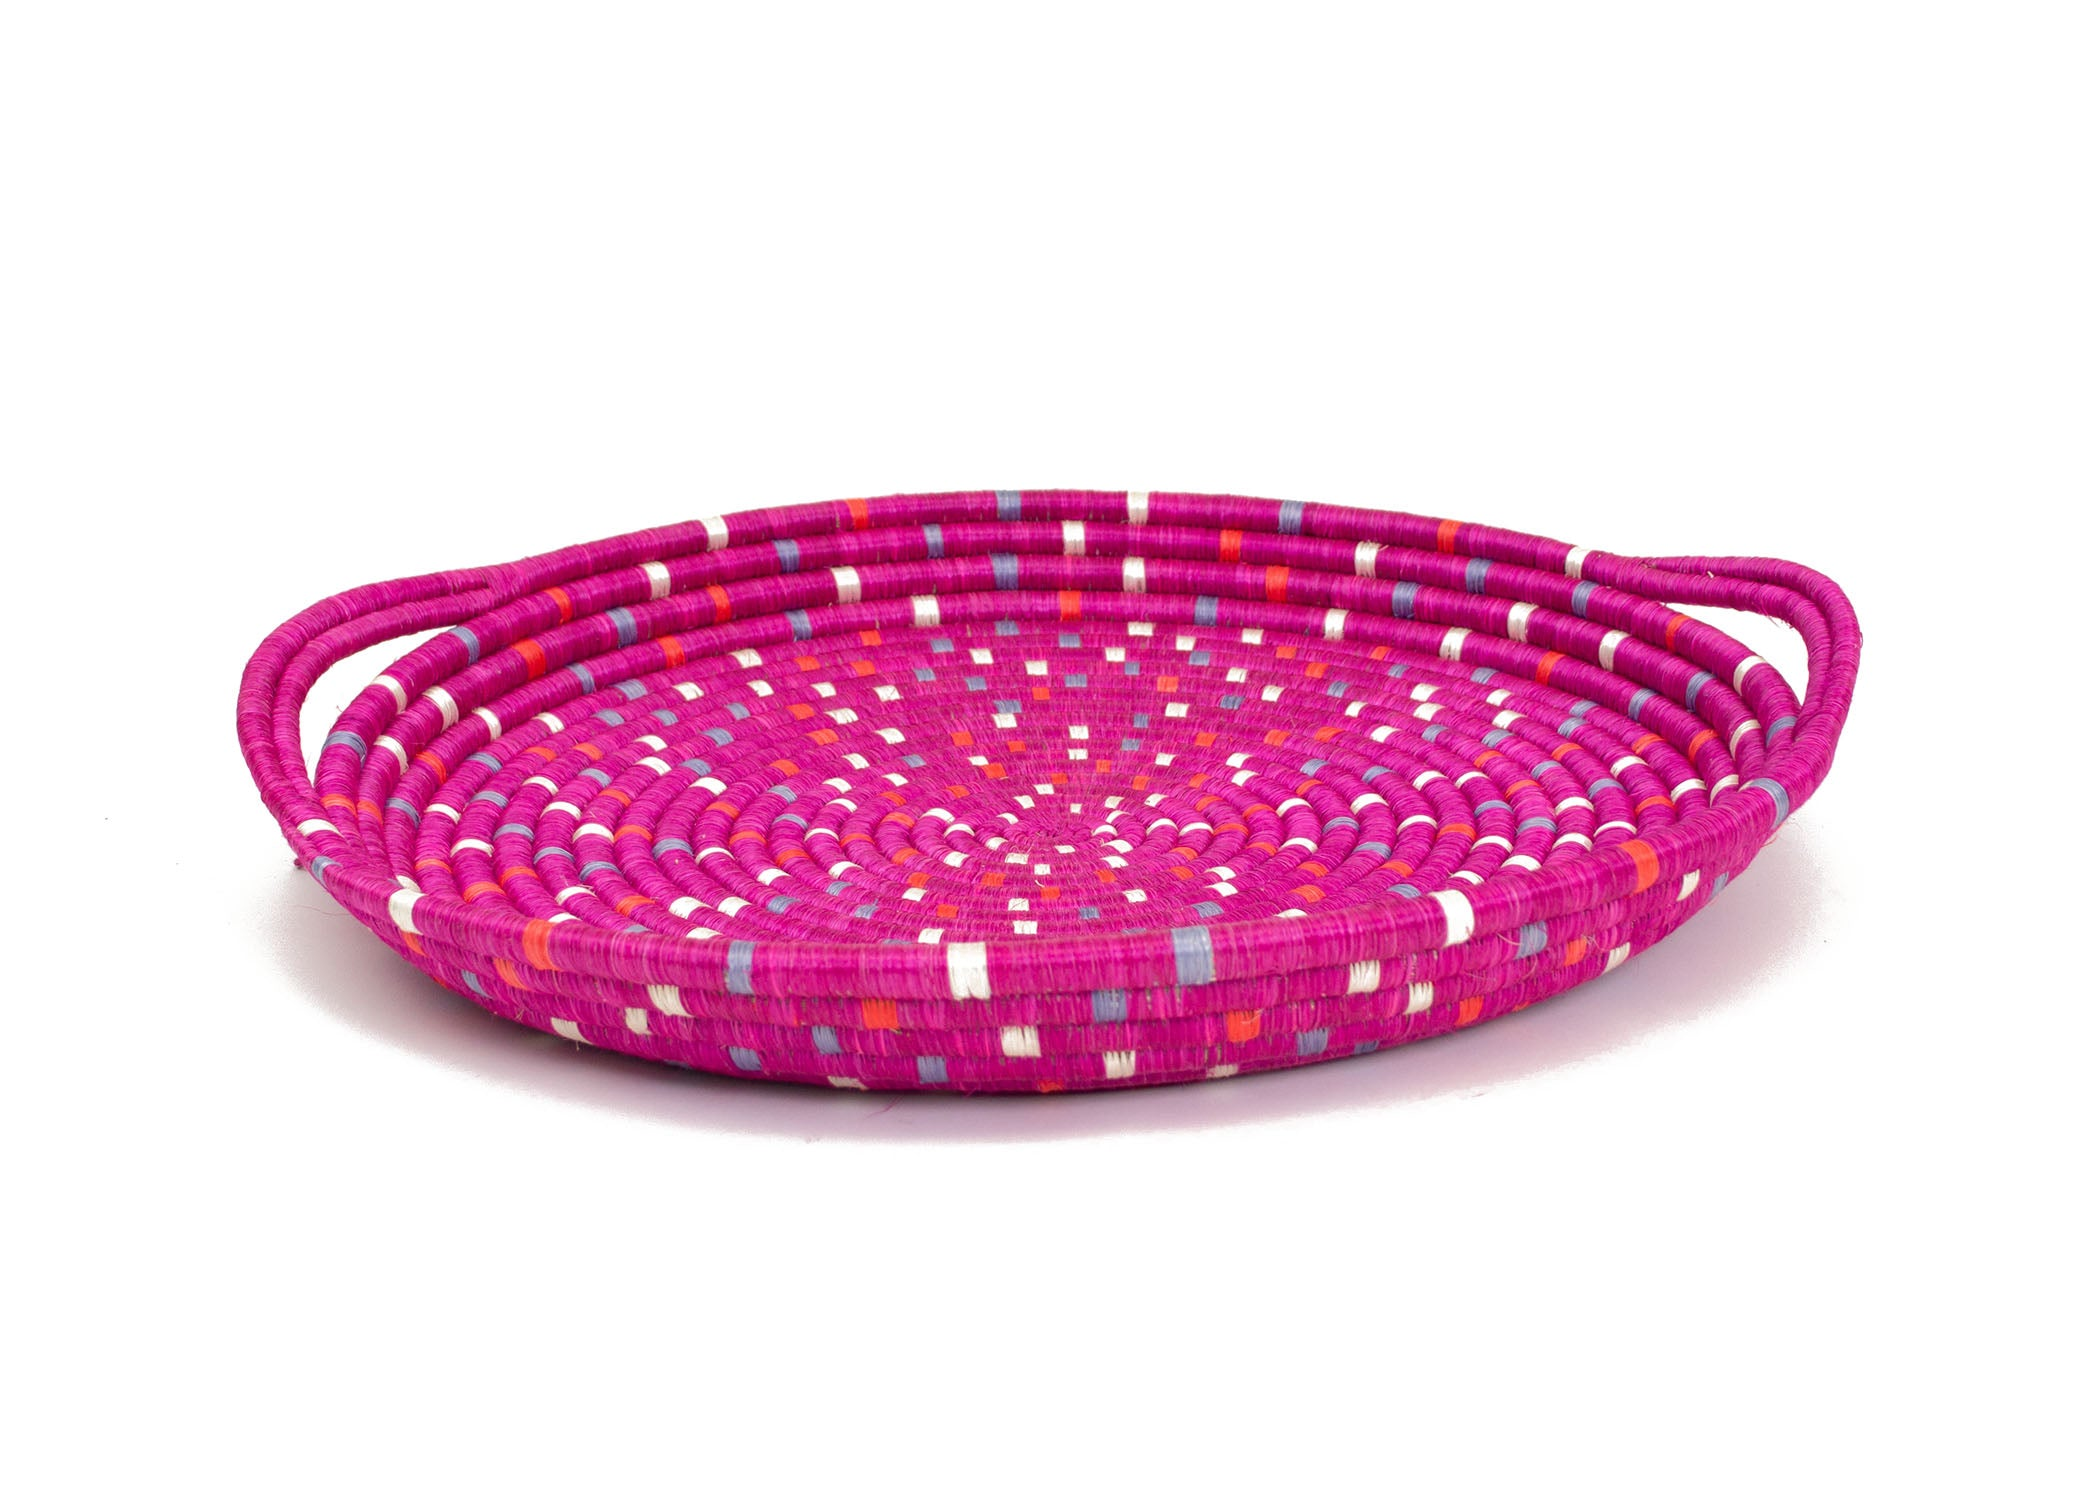 Speckled Vivid Viola Tray - KAZI - Artisan made high quality home decor and wall art